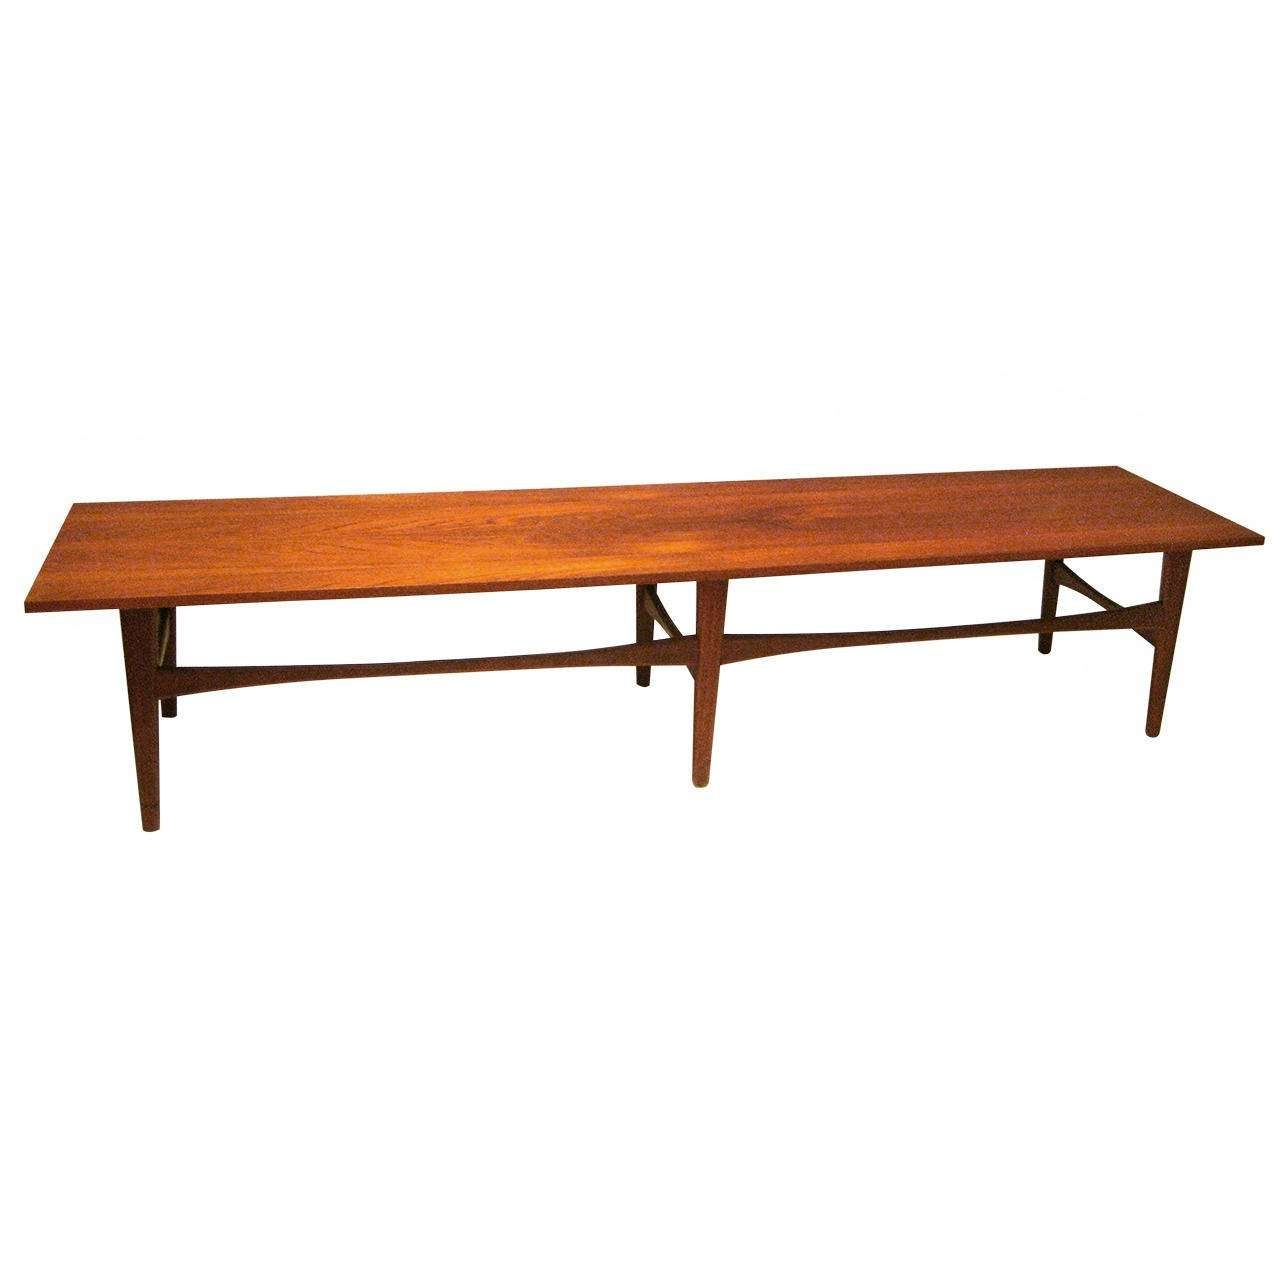 Most Recently Released Long Coffee Tables With Regard To Danish Modern Long Coffee Table Or Bench In Teak At 1stdibs (View 5 of 20)